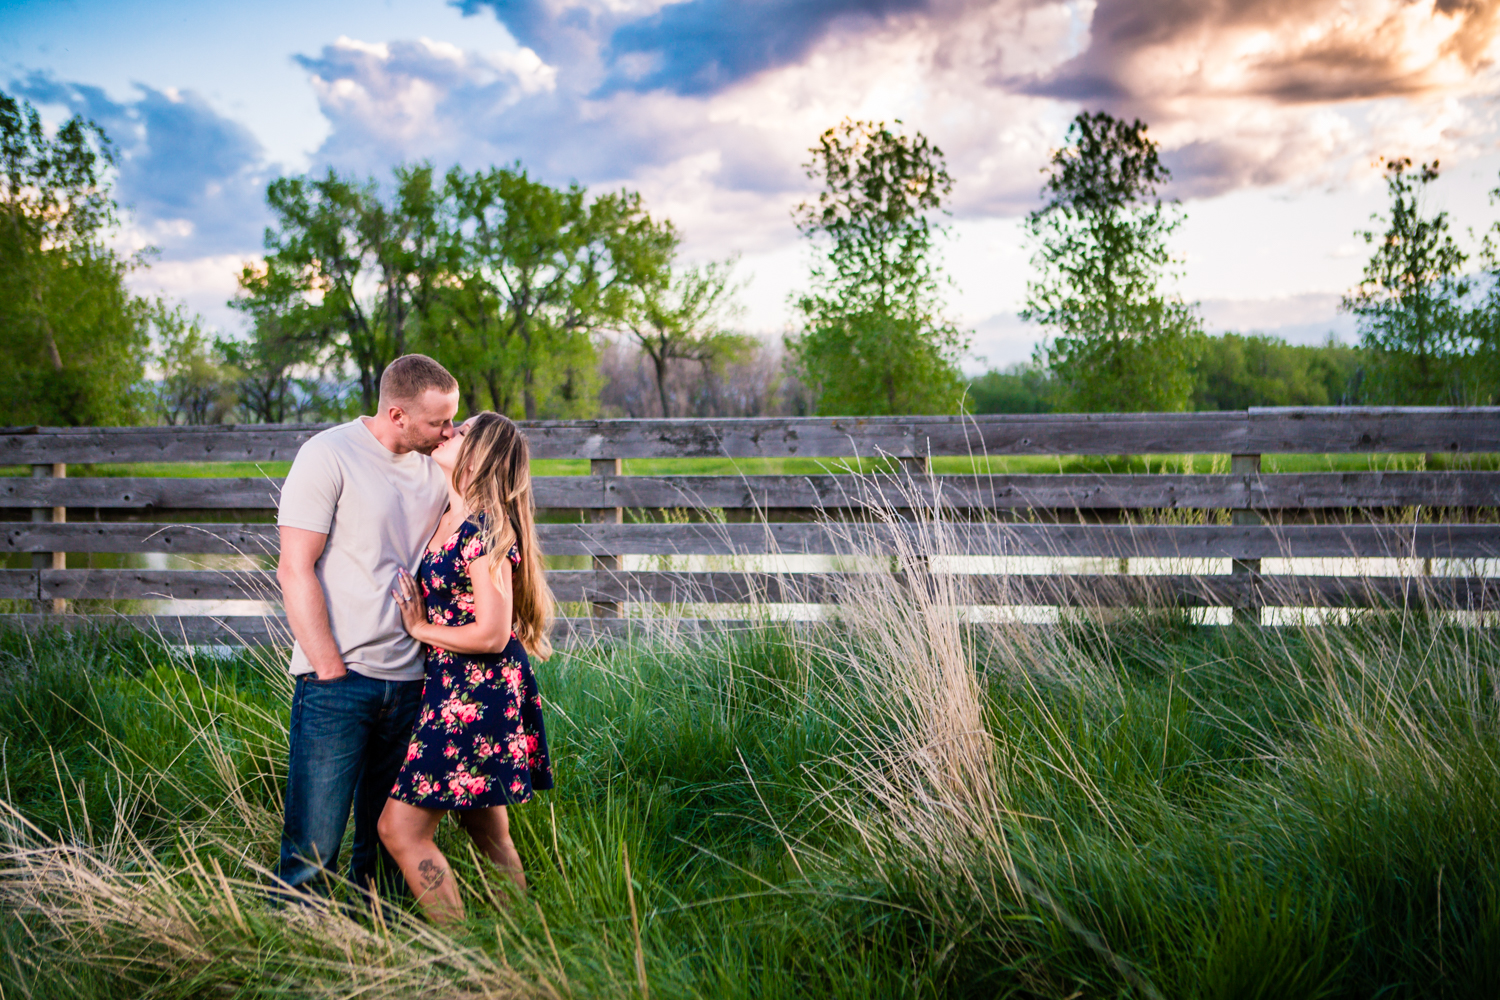 Engagement with a rustic fence at Sandstone Ranch. Take by Jared M. Gant